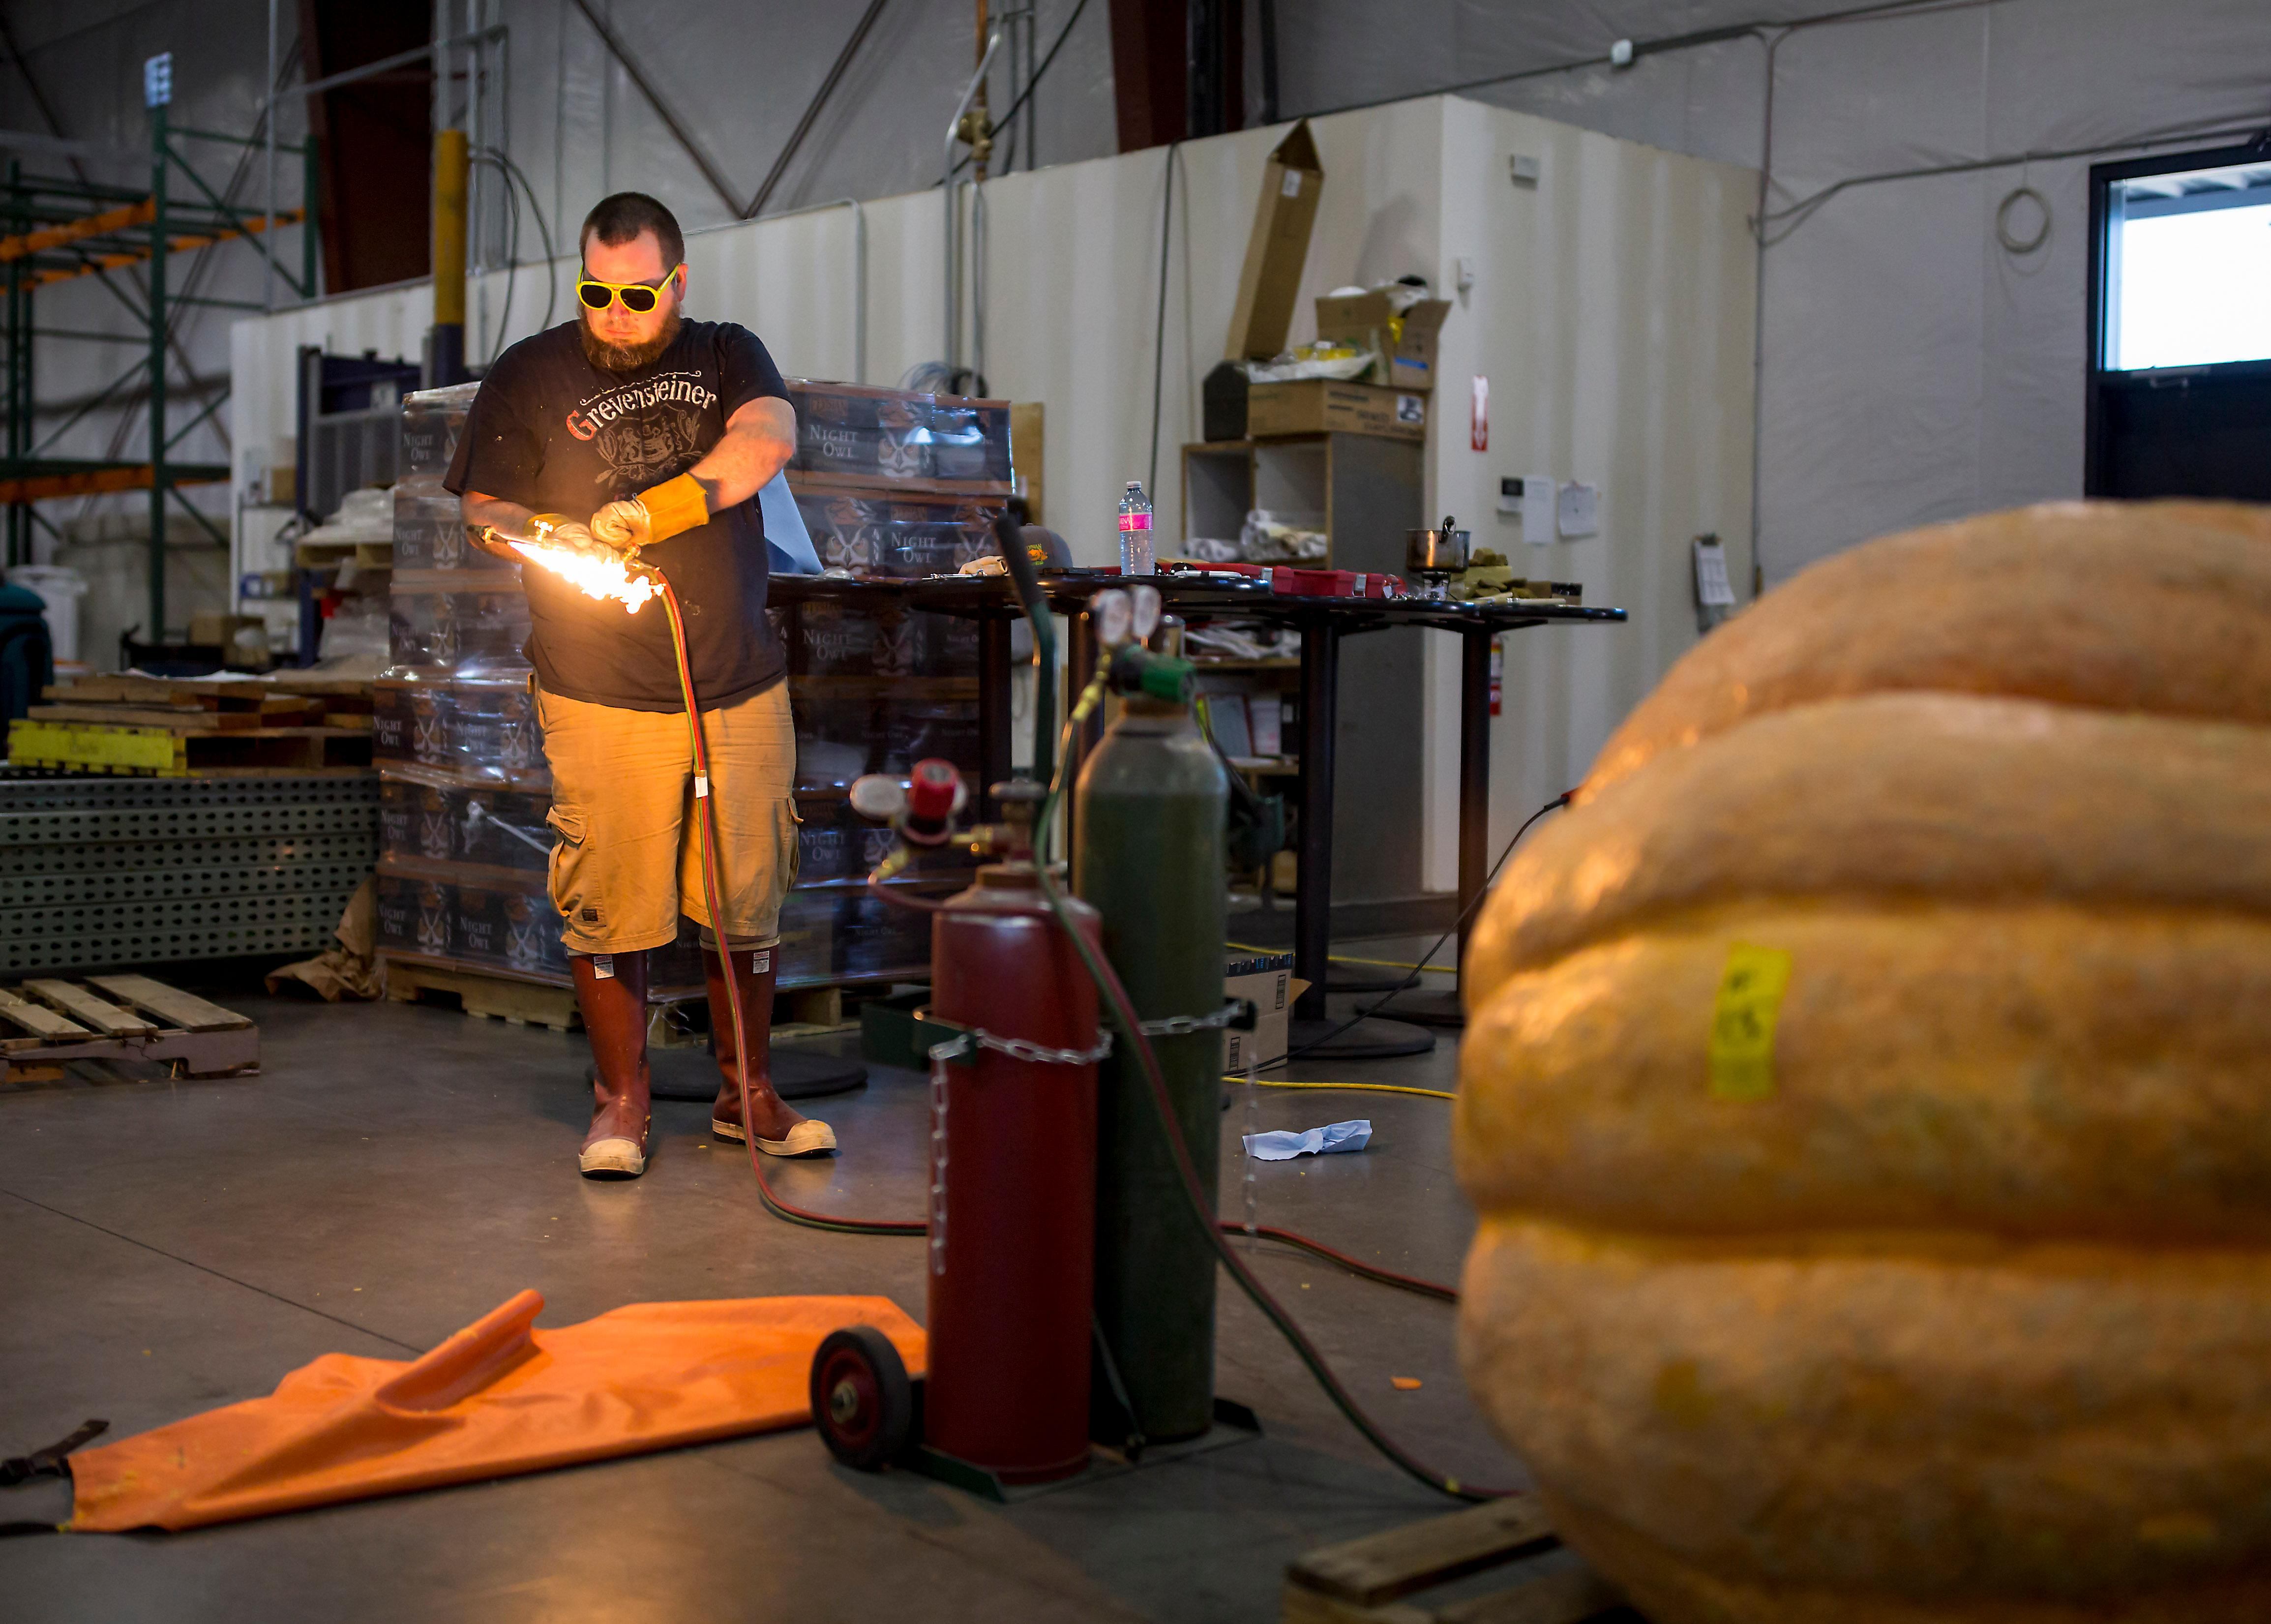 Elysian cellarmaster Dan-o slowly transforms a massive pumpkin into a usable keg for the Great Pumpkin Beer Festival that will take place this weekend at the Seattle Center. (Sy Bean / Seattle Refined)